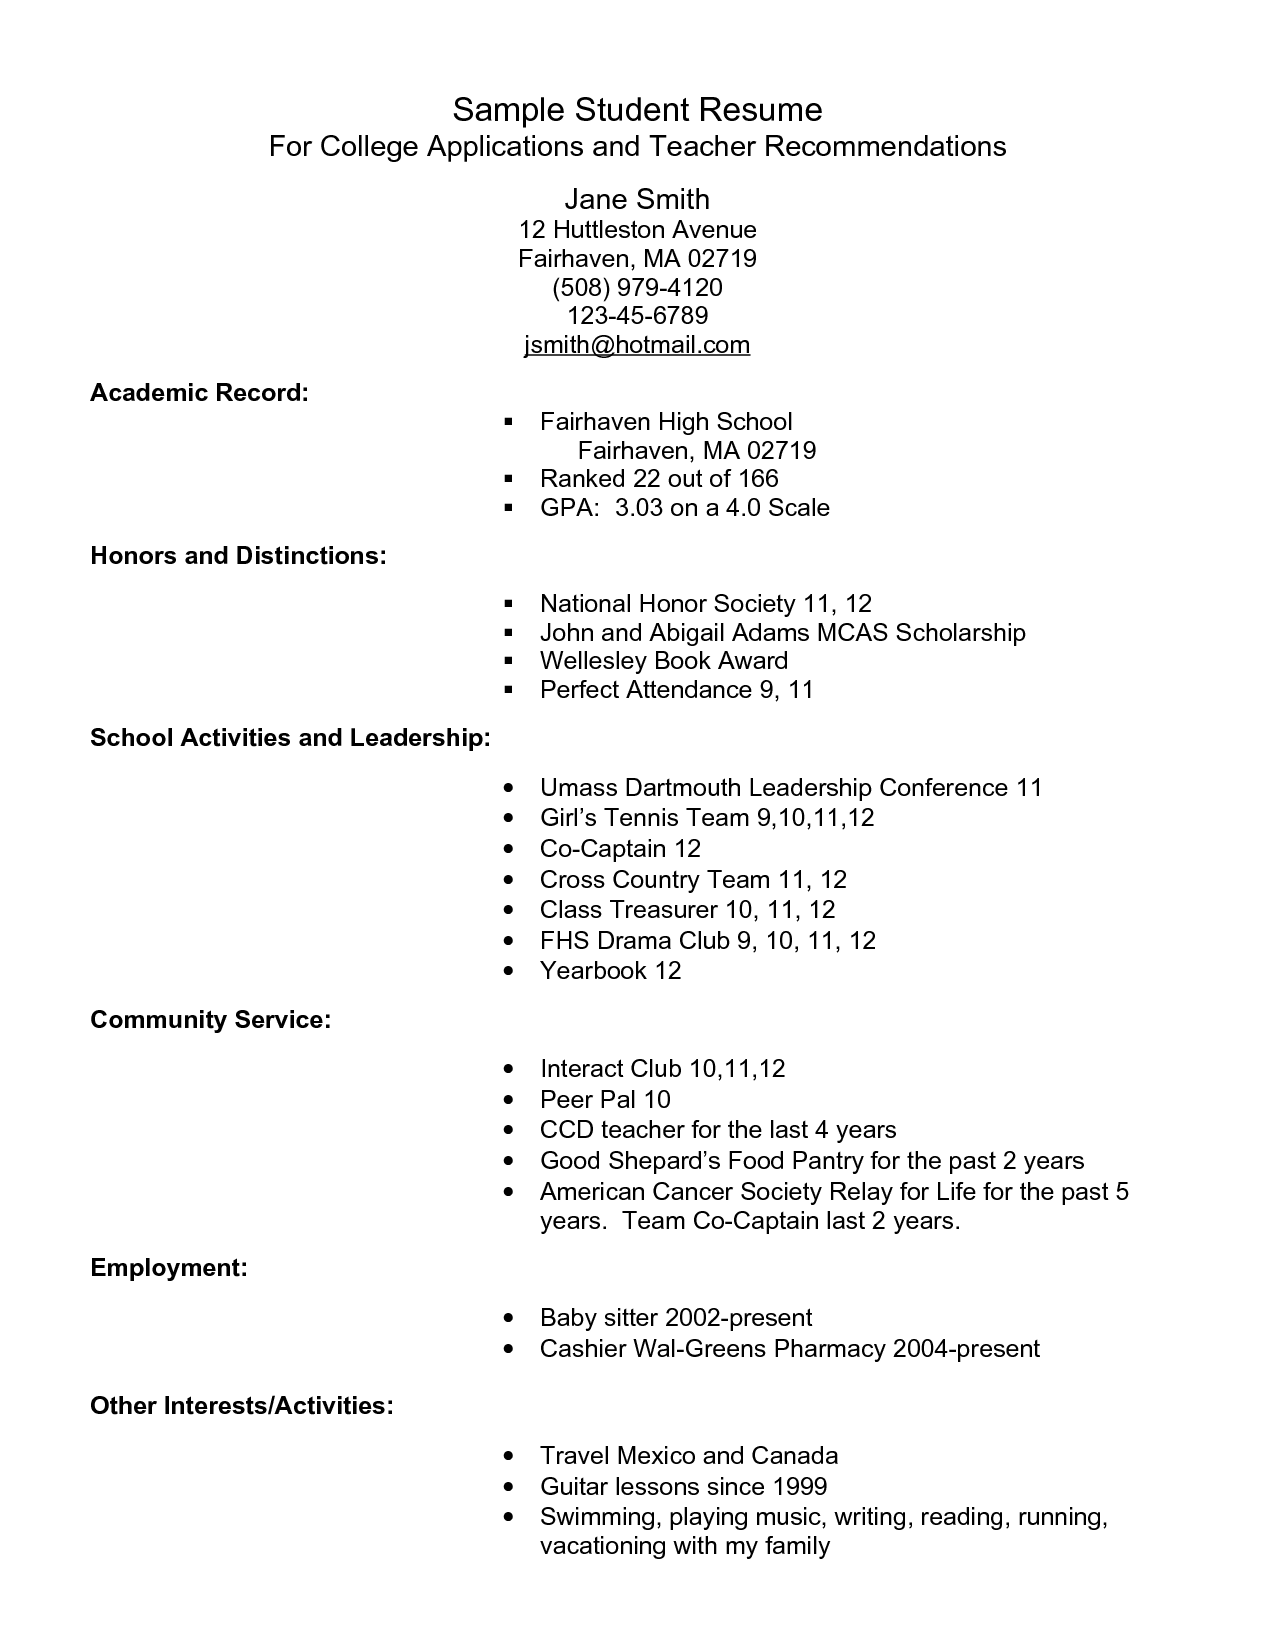 Resume Samples For High School Students Example Resume For High School Students For College Applications